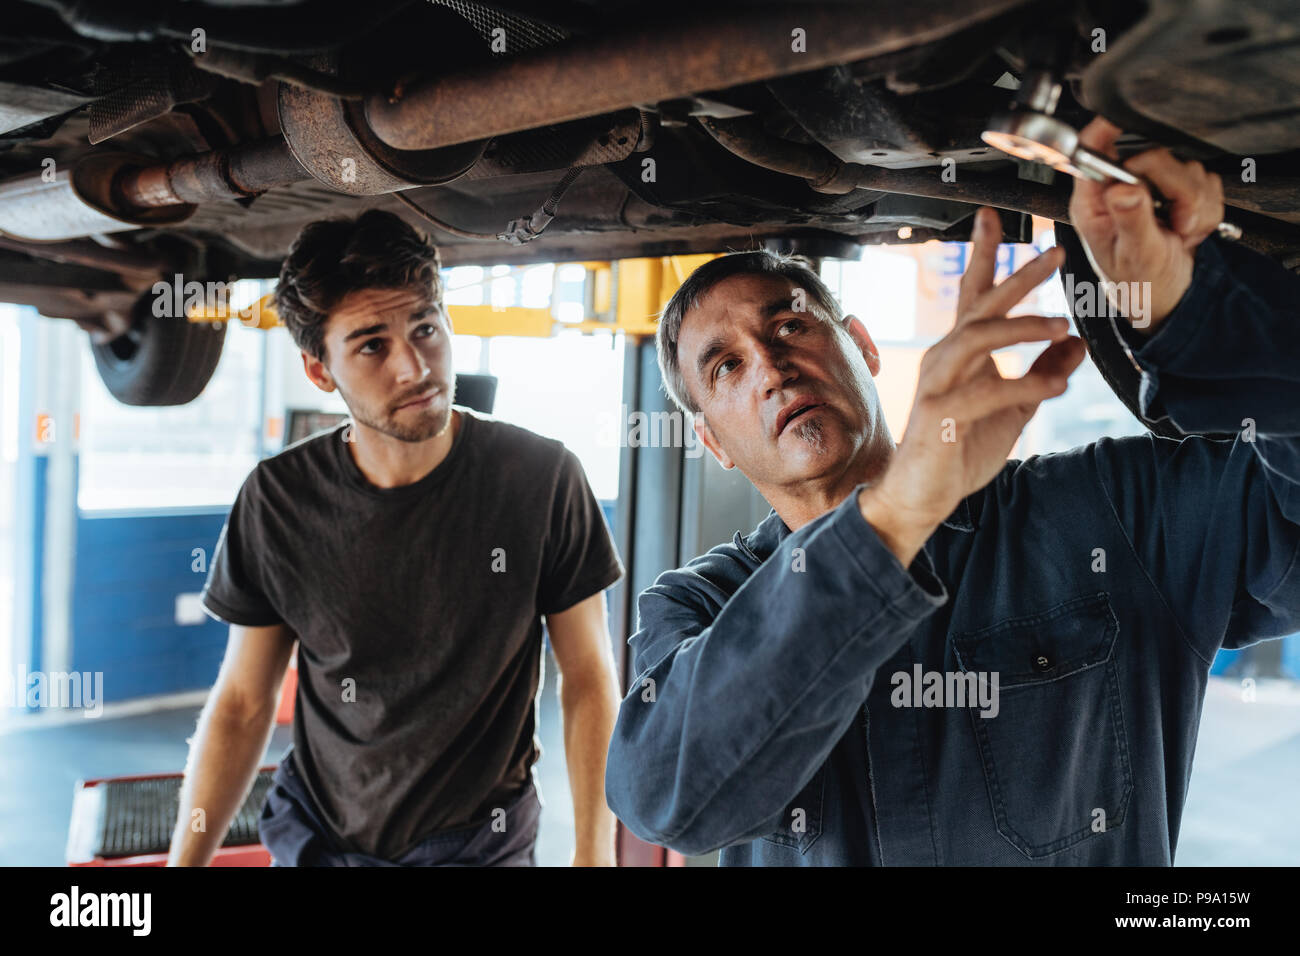 Mature male mechanic discussing and showing something under the car to coworker. Mechanic and male trainee working underneath car together - Stock Image